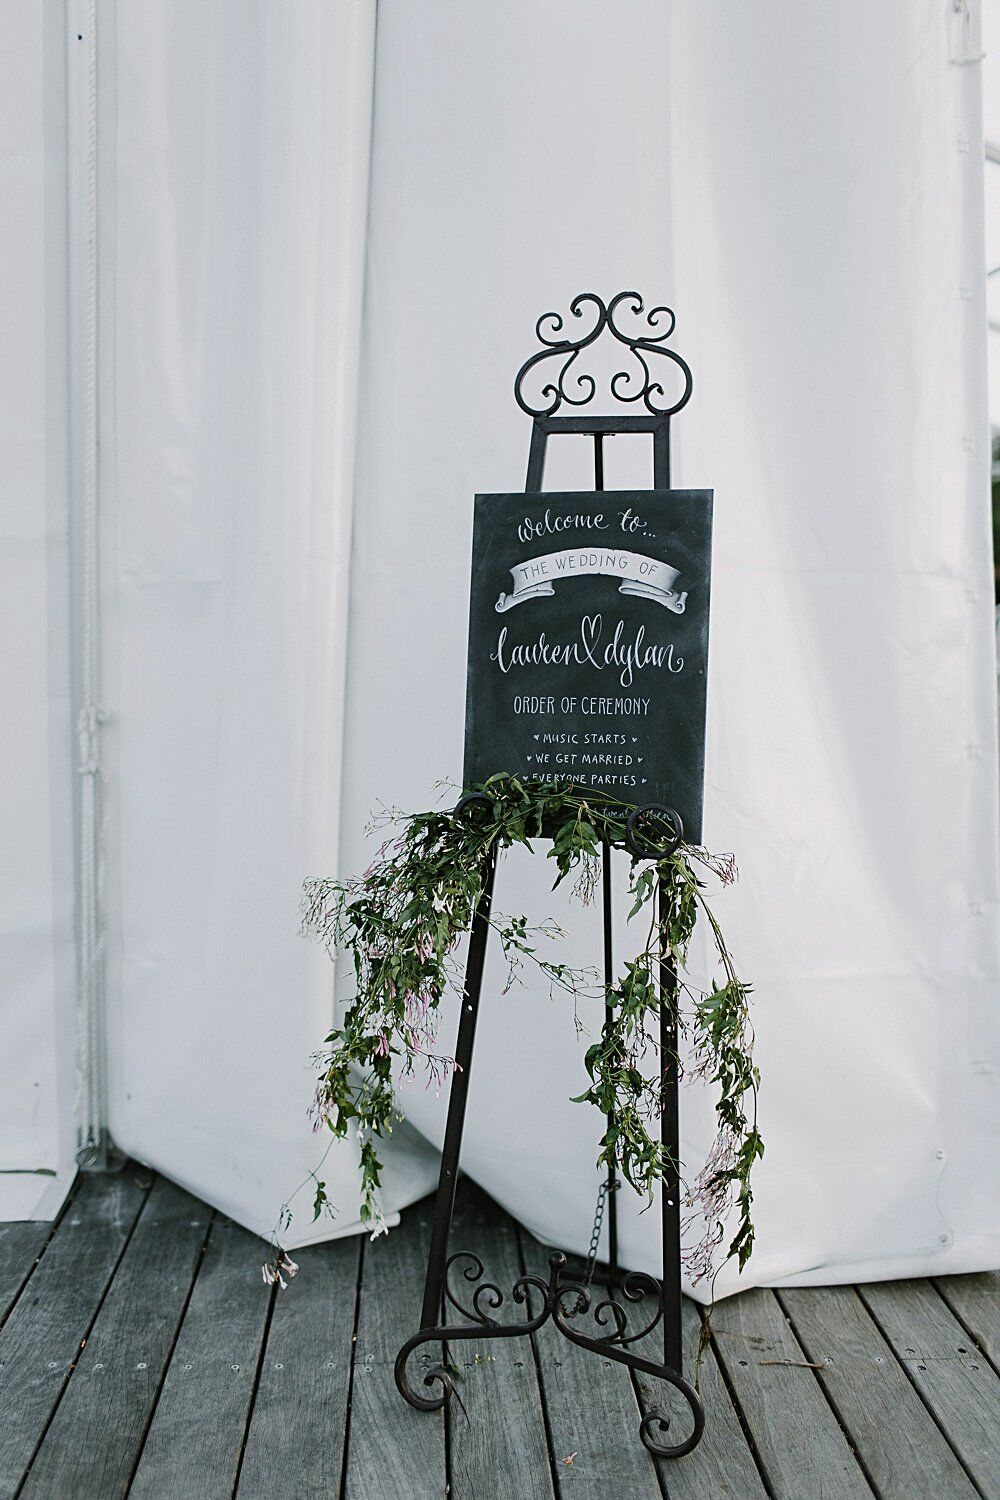 Wedding Decoration and Prop Hire Checklist - Image via Heart and Colour Photography